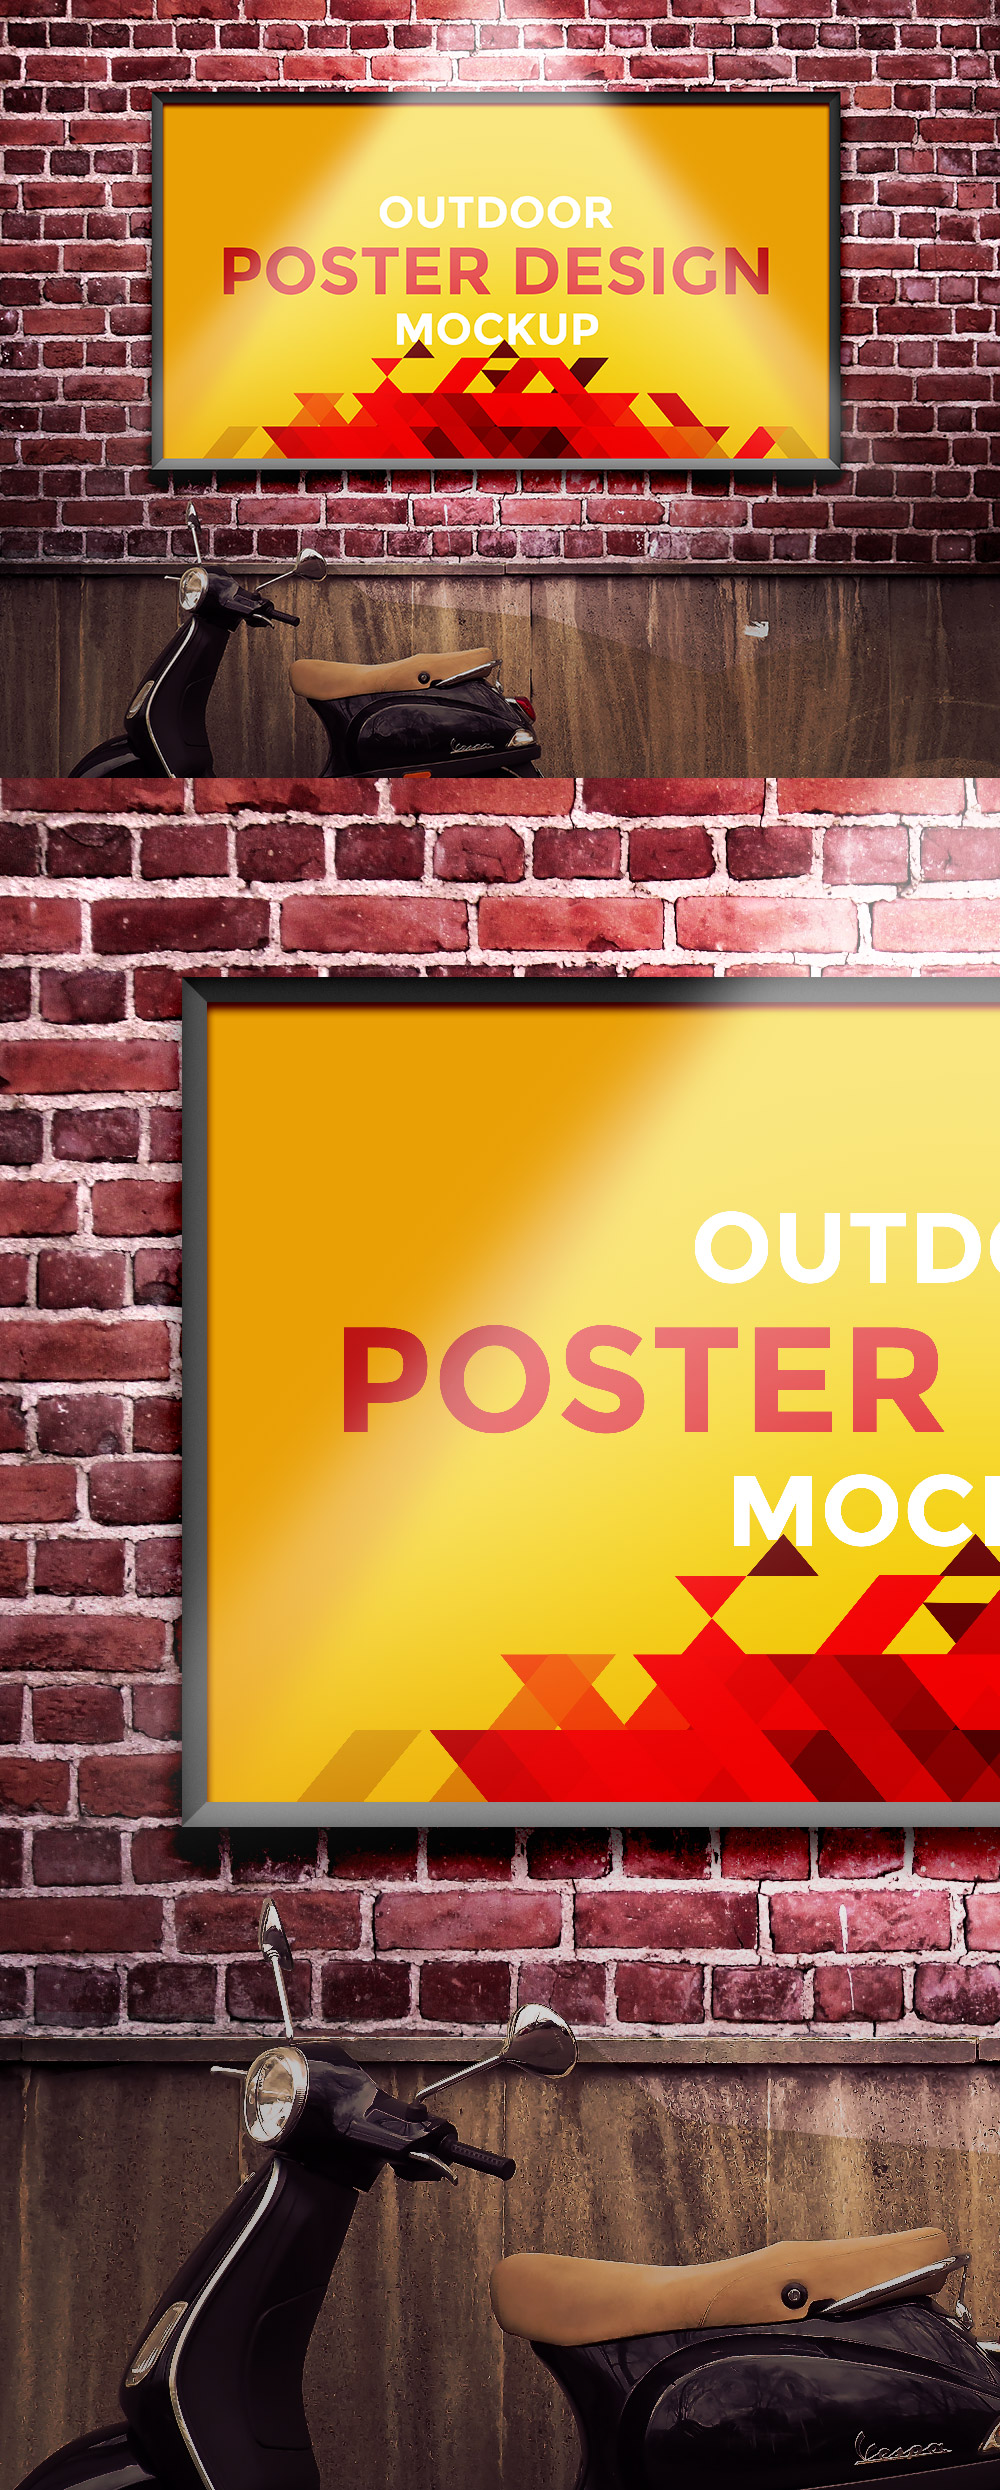 Outdoor Poster Design Mockup